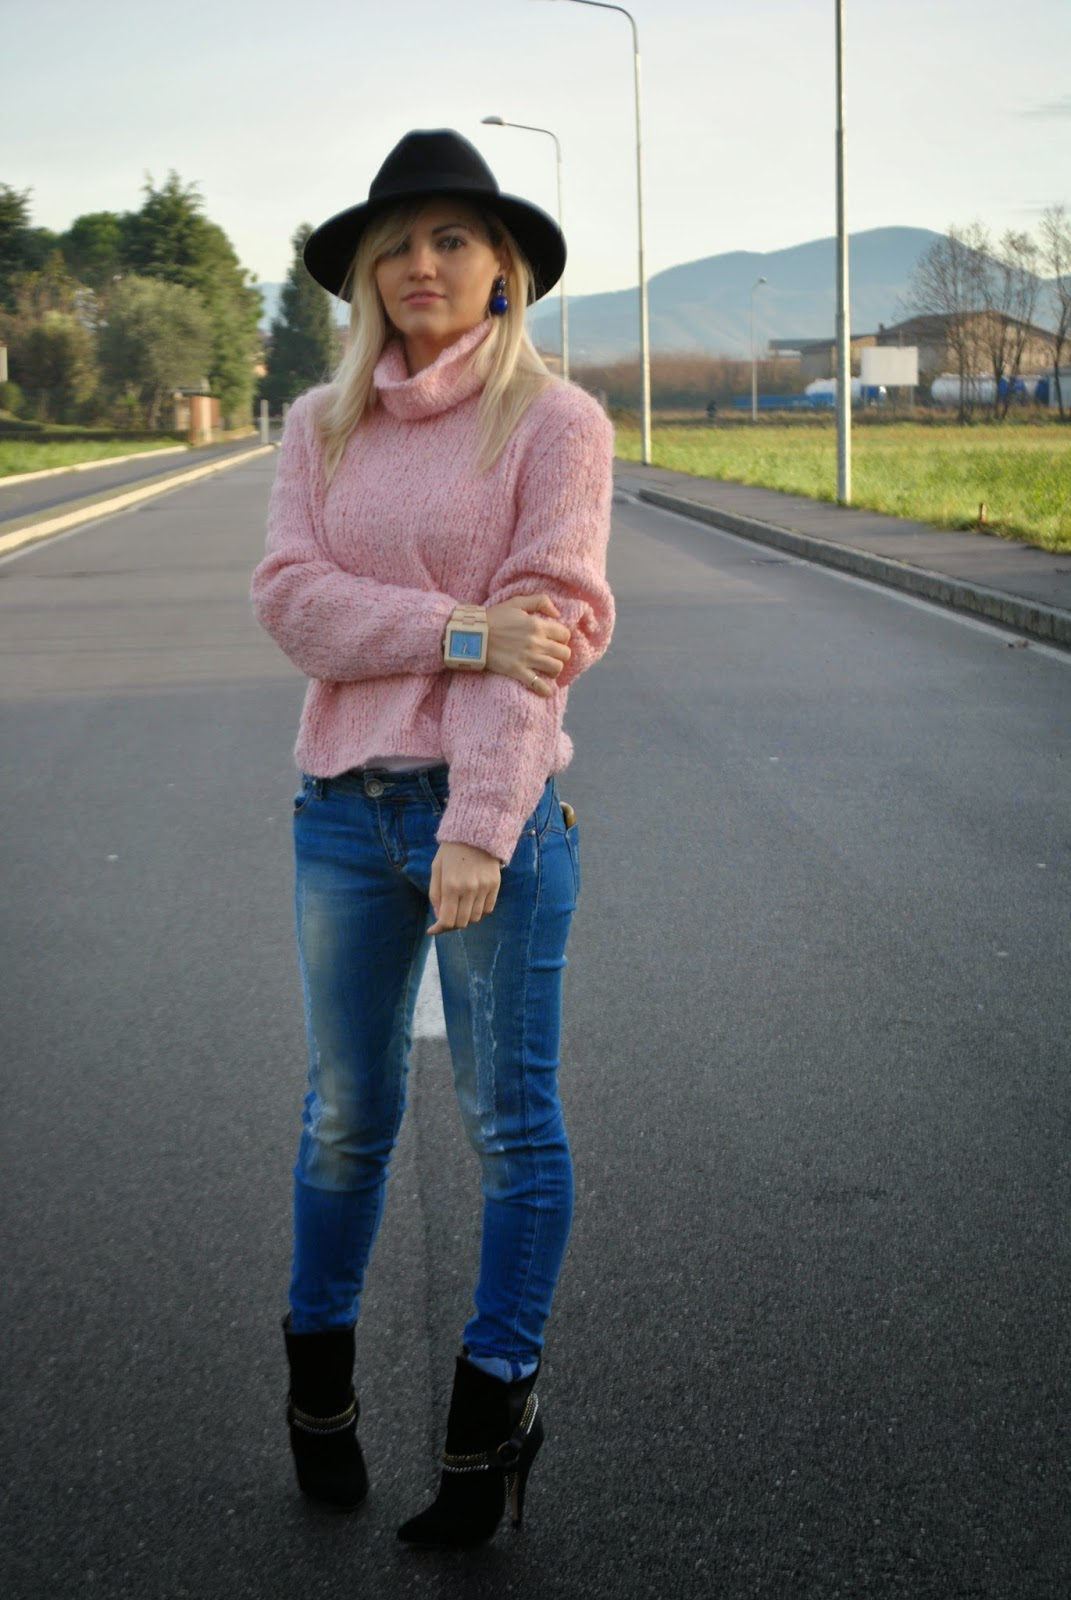 outfit maglione a collo alto outfit cappello fedora come abbinare il cappello fedora how to wear fedora hat maglione a collo alto come abbinare il maglione a collo alto abbinamenti maglione a collo alto how to wear turtleneck sweater stivali buffalo buffalo boots jeans e tacchi outfit jeans e tacchi outfit tacchi e jeans jeans and heels maglione a collo alto rosa cappello fedora nero orologio in legno gufo italy outfit dicembre 2014 outfit invernali outfit invernali casual winter outfits december outfits mariafelicia magno fashion blogger colorblock by felym fashion blogger italiane fashion blog italiani blog di moda blogger italiane bionde ragazze bionde blonde girls blonde girls italian fashion bloggers italy  orecchini jewels couture